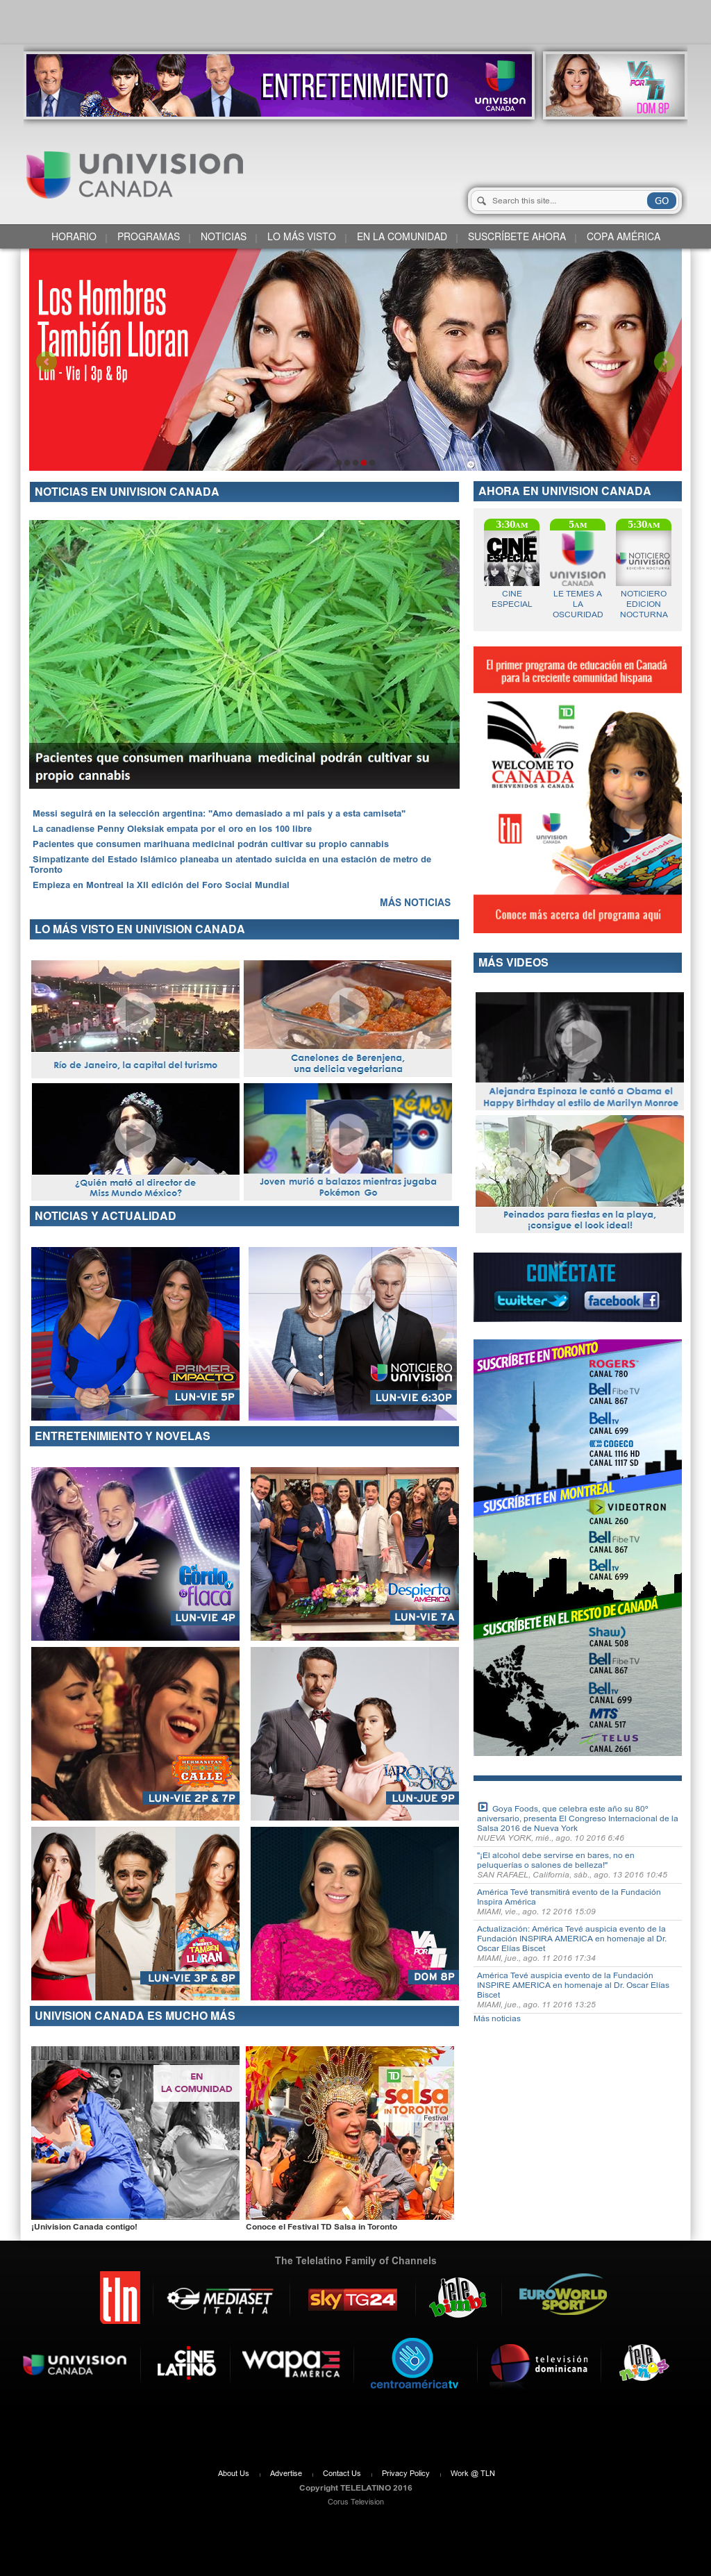 Univision Canada Competitors, Revenue and Employees - Owler